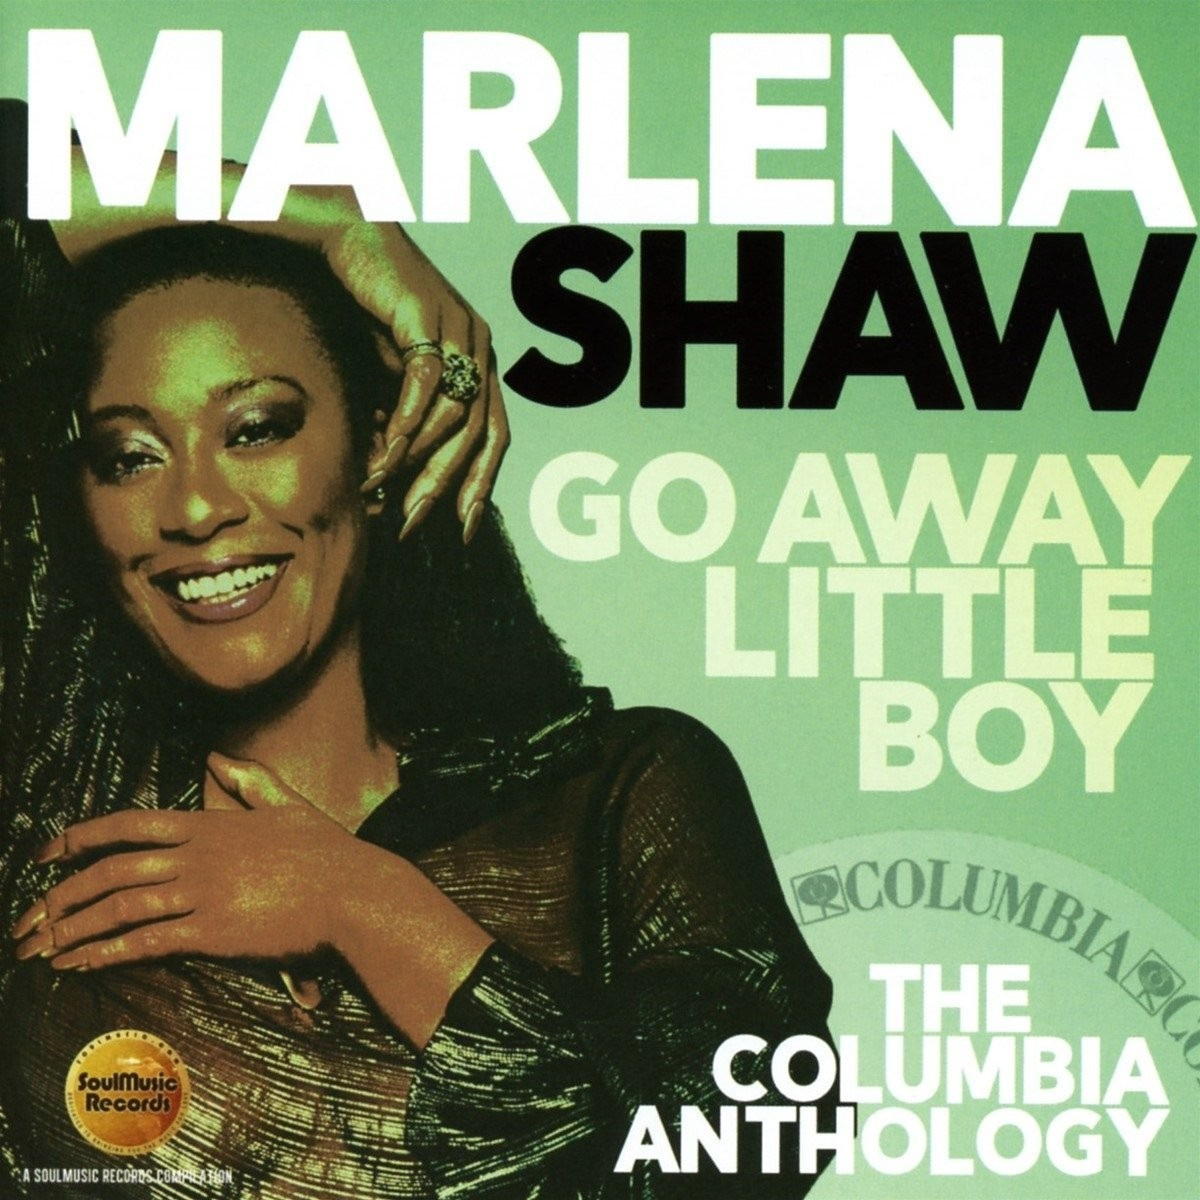 Go Ways Little Boy -Columbia Antholology